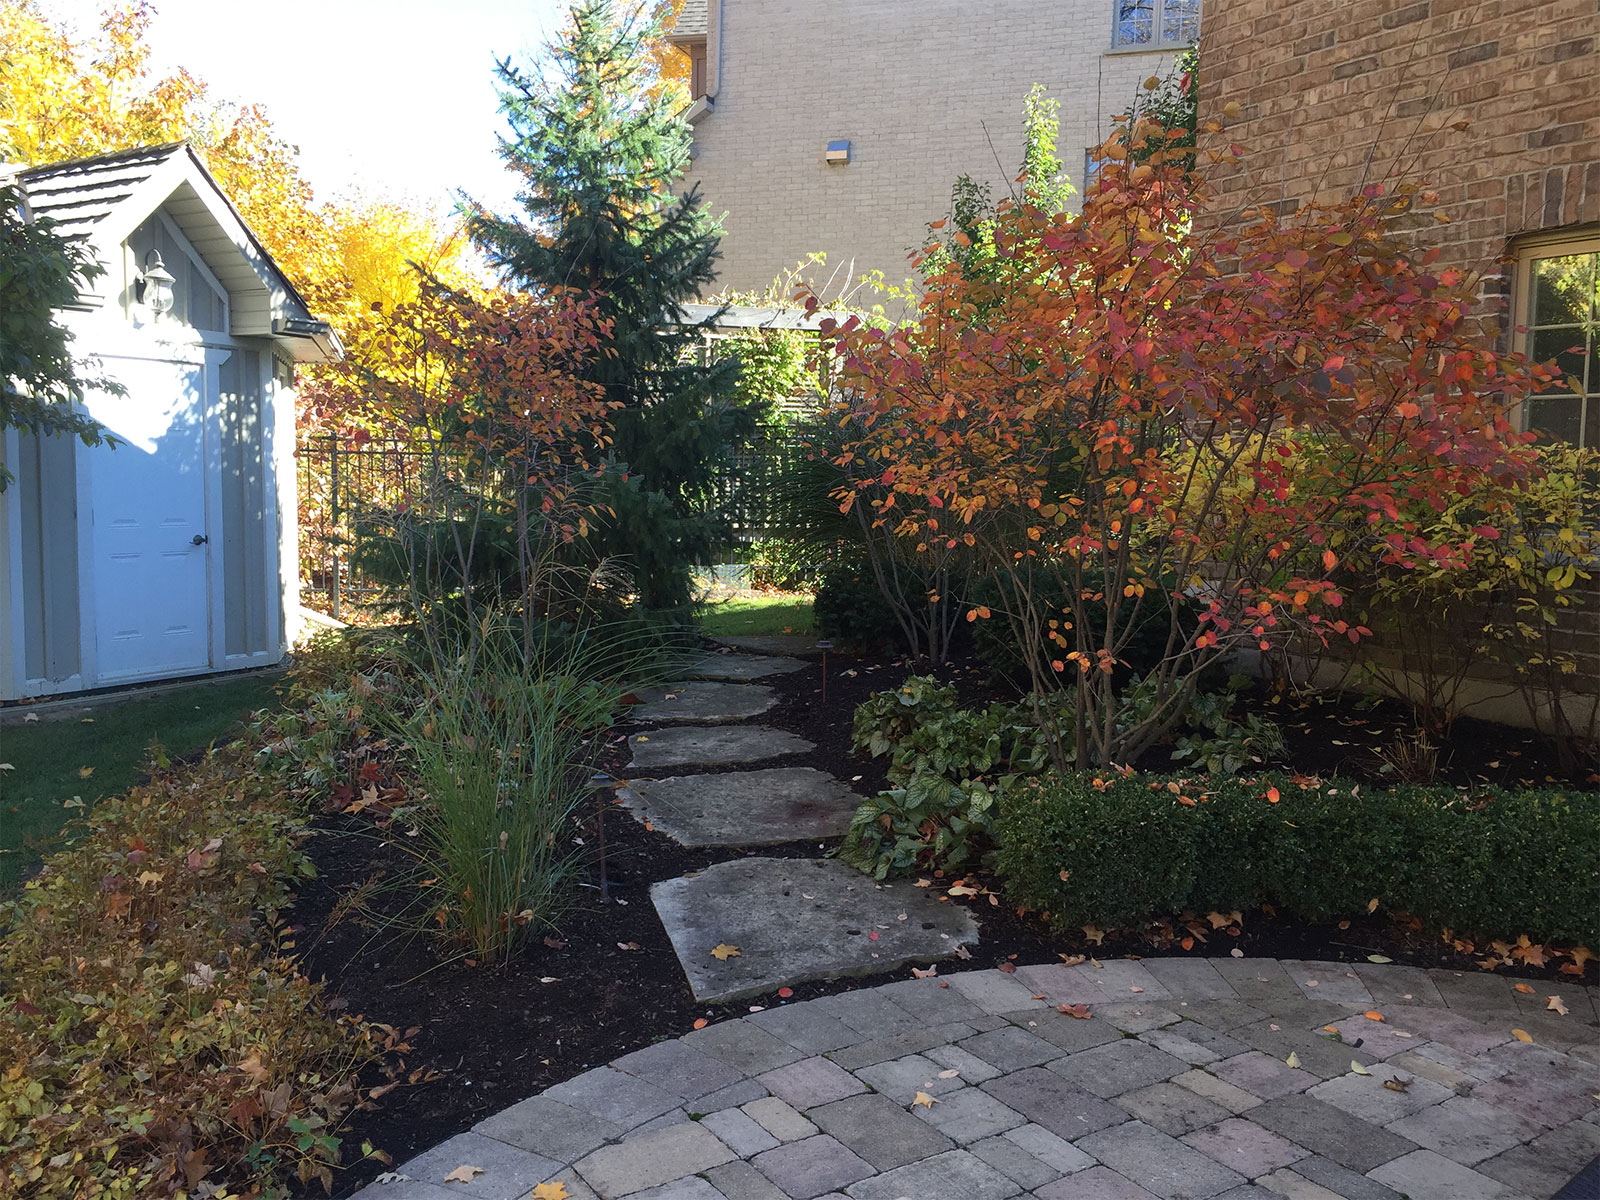 Garden Path through Serviceberry